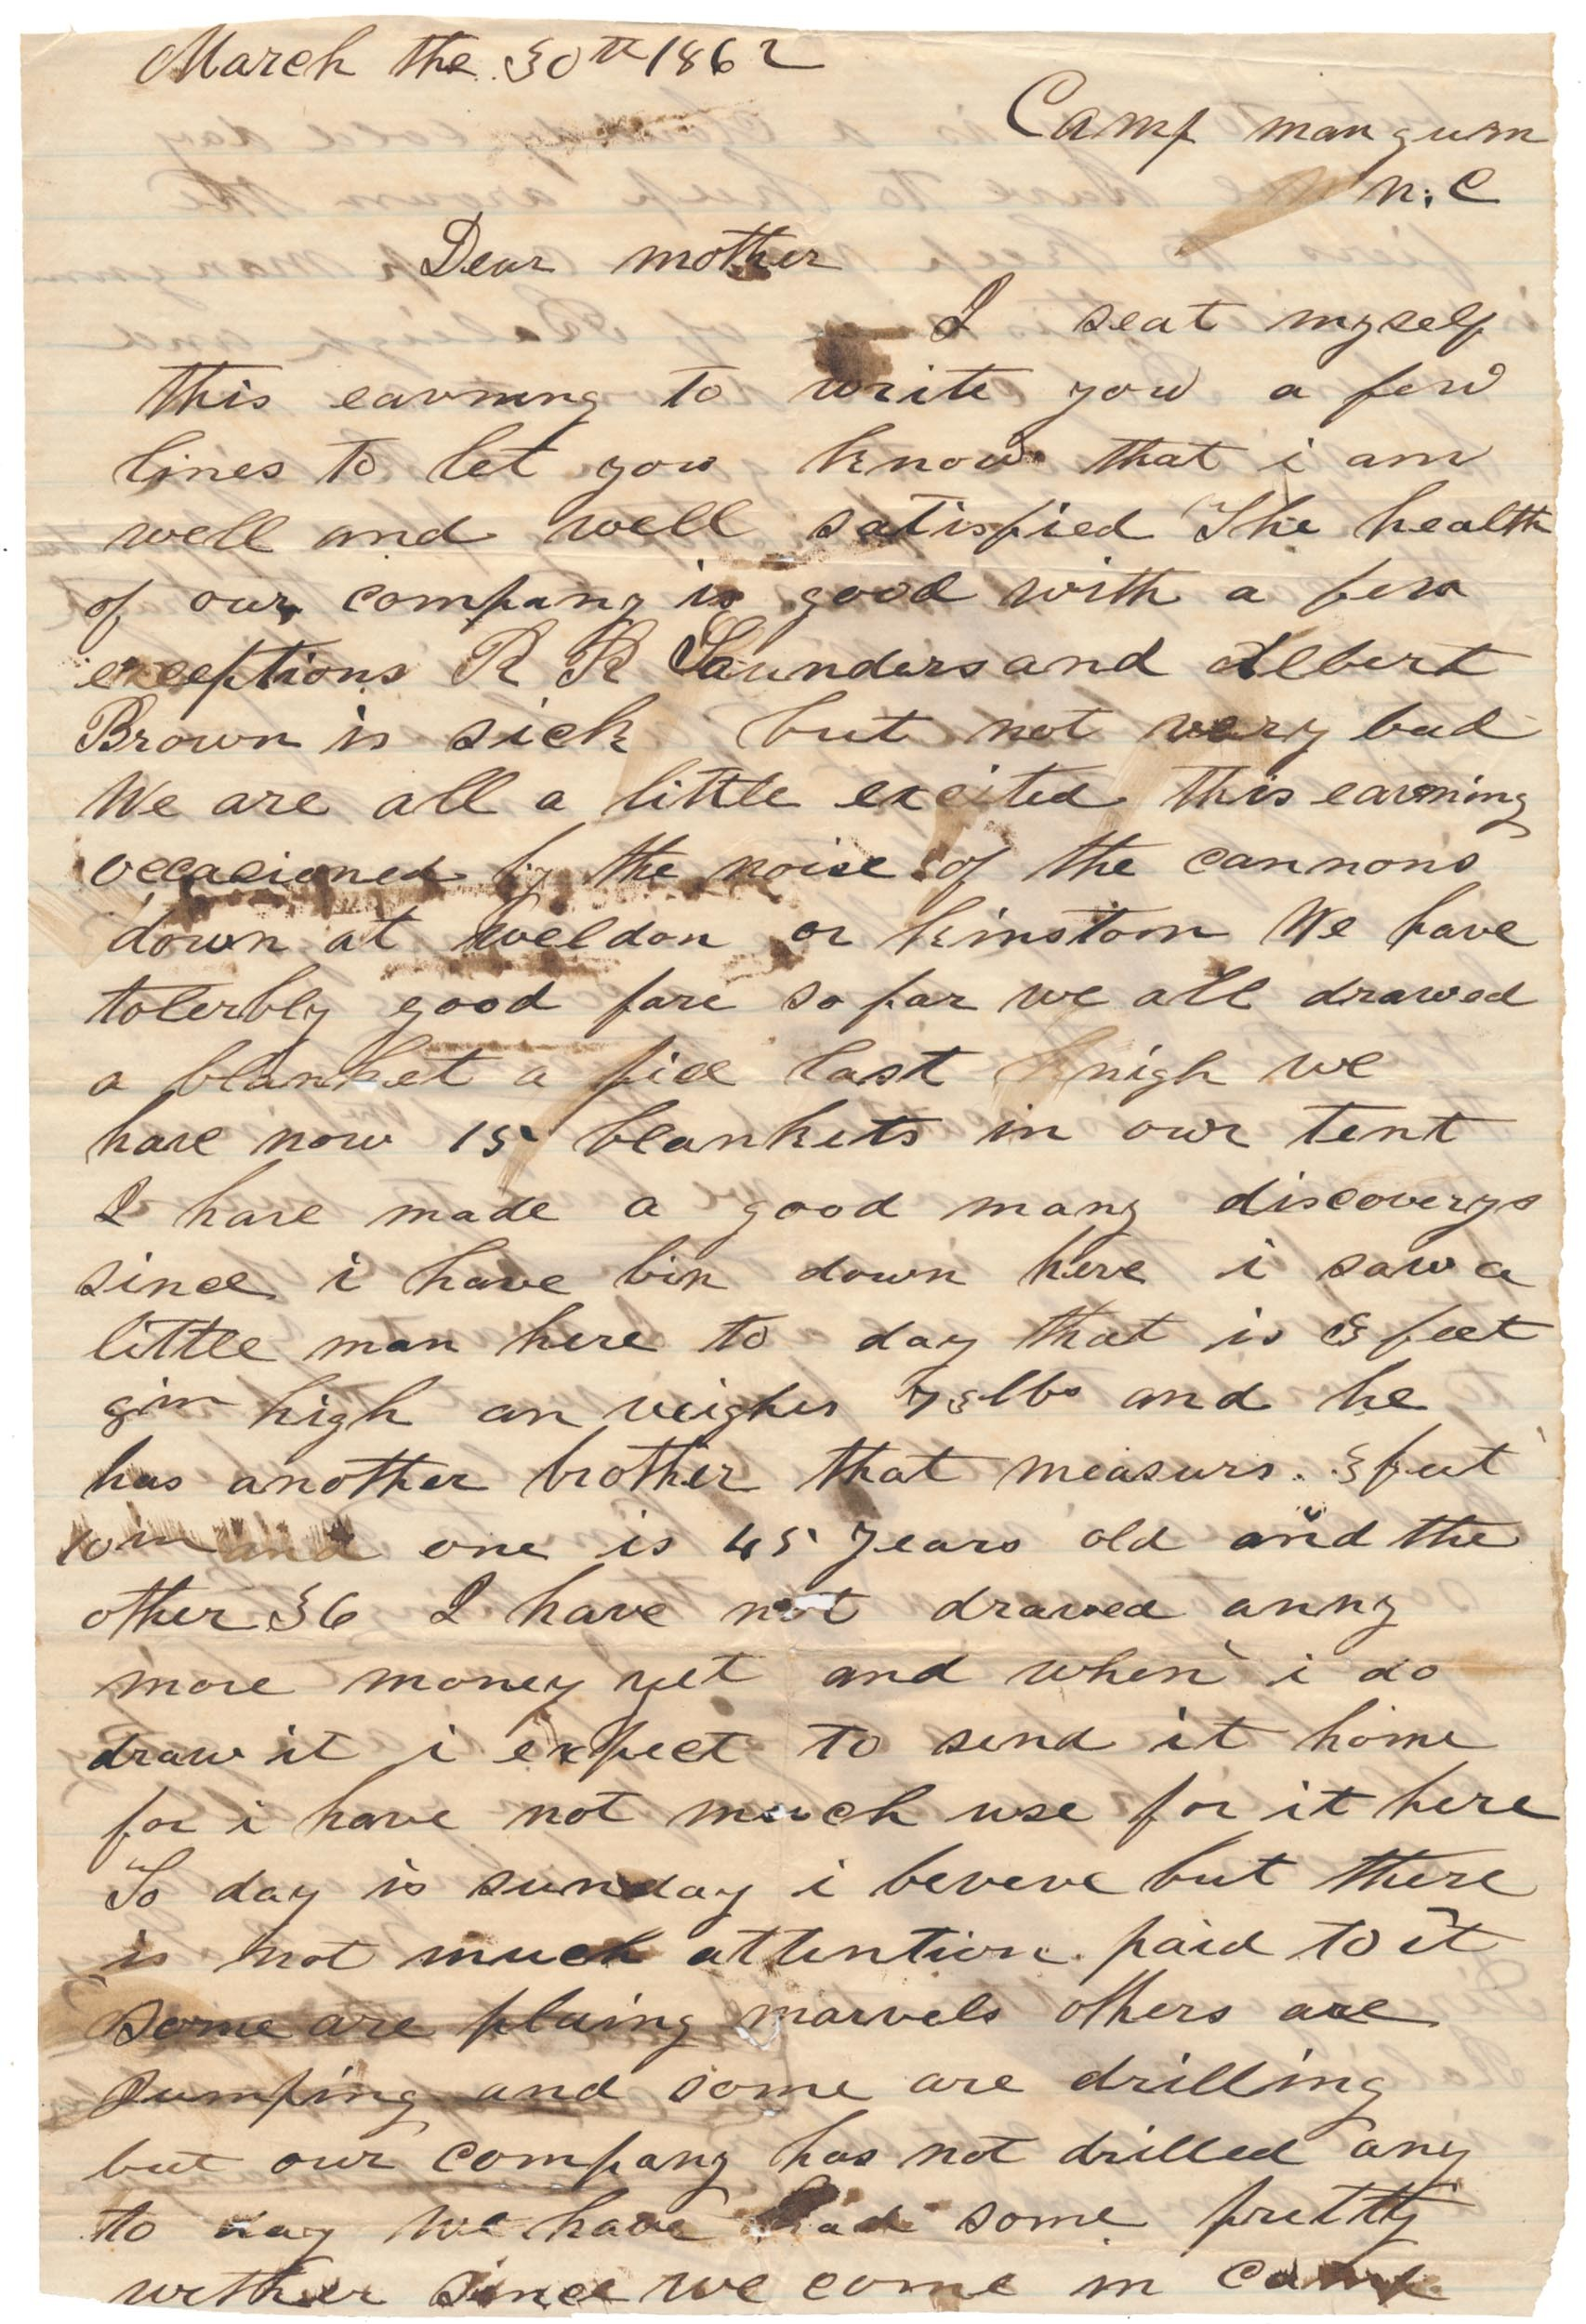 1862 45TH NORTH CAROLINA SOLDIER LETTER – PVT. WILLIAM J. LOWRY; KILLED AT GETTYSBURG ON JULY 2ND 1863!